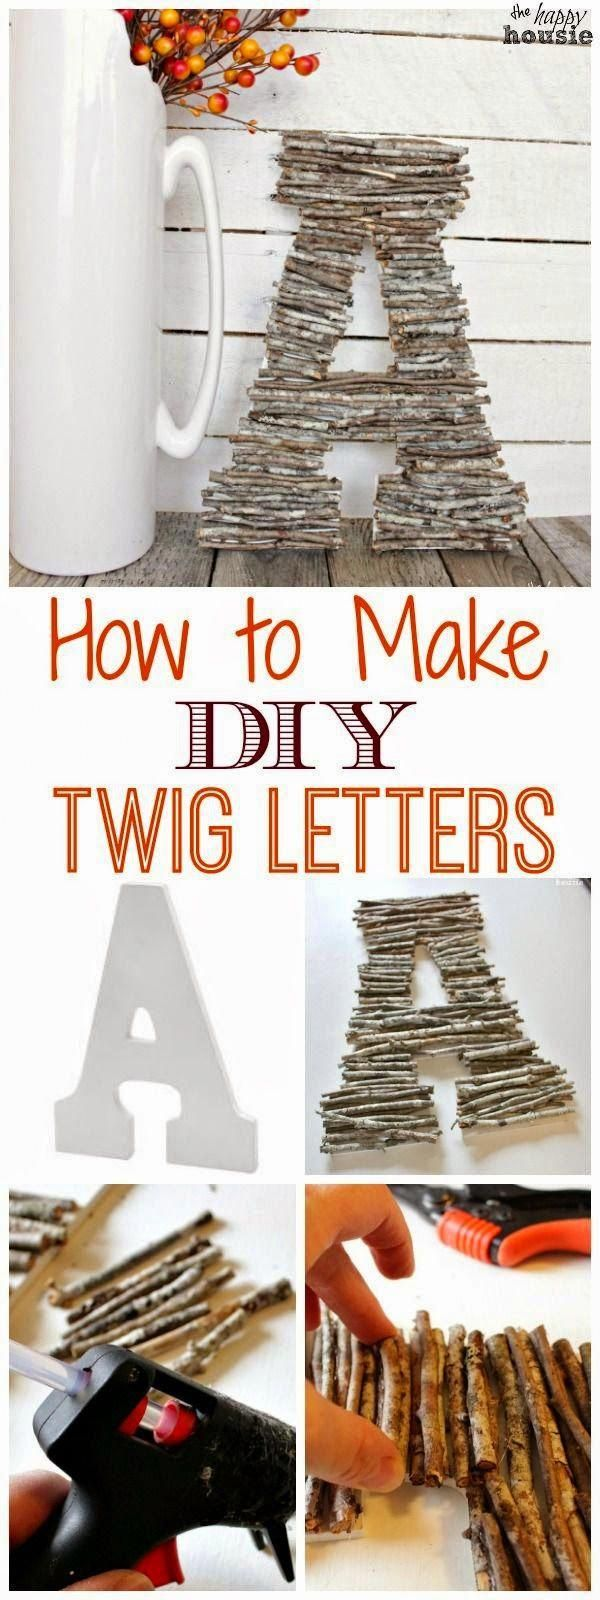 How to Make DIY Twig Letters | The Happy Housie